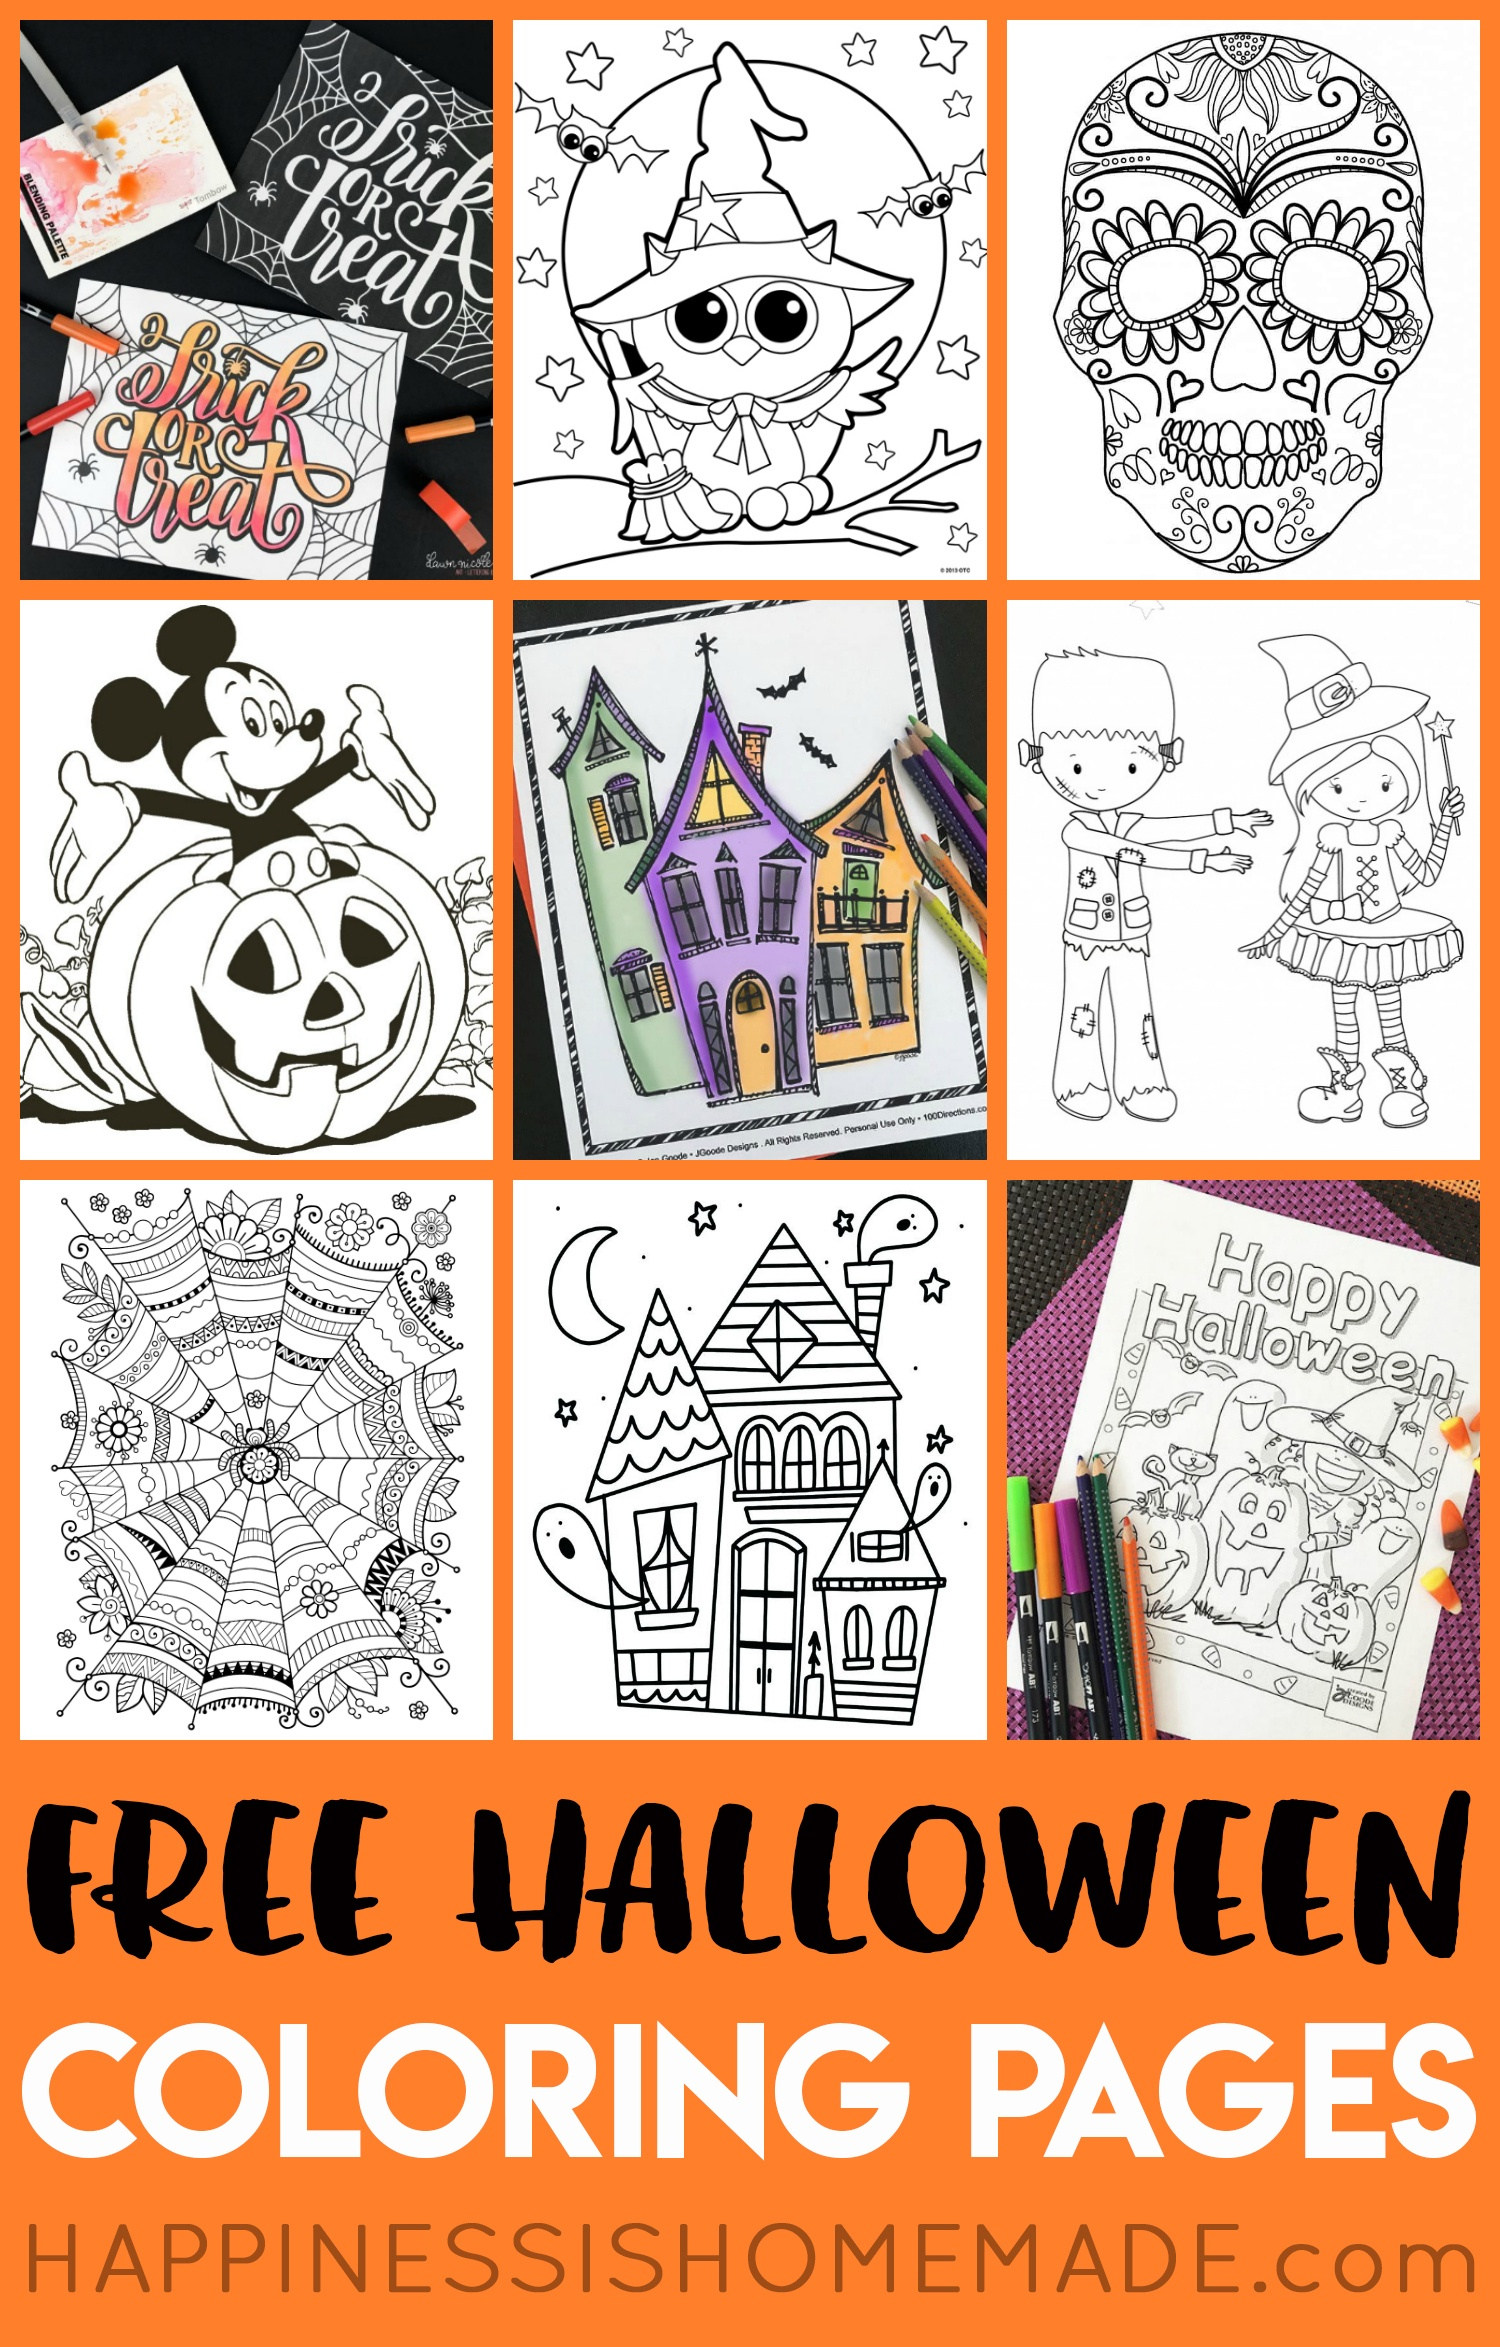 Free Halloween Coloring Pages For Adults & Kids - Happiness Is Homemade - Free Printable Halloween Cards